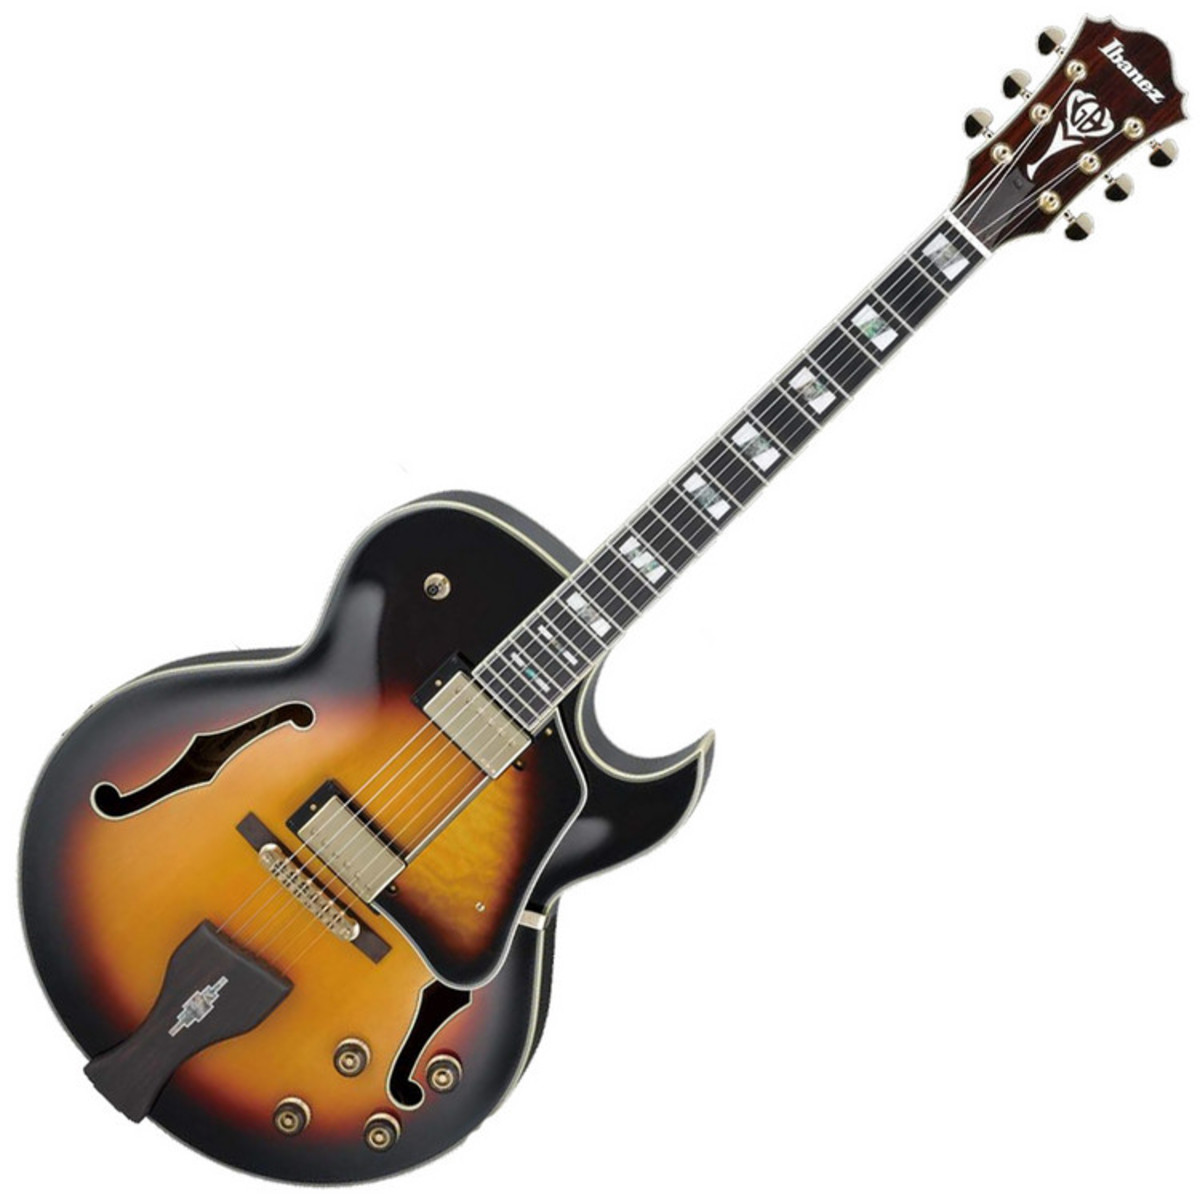 ibanez lgb30 george benson vintage yellow burst at gear4music. Black Bedroom Furniture Sets. Home Design Ideas